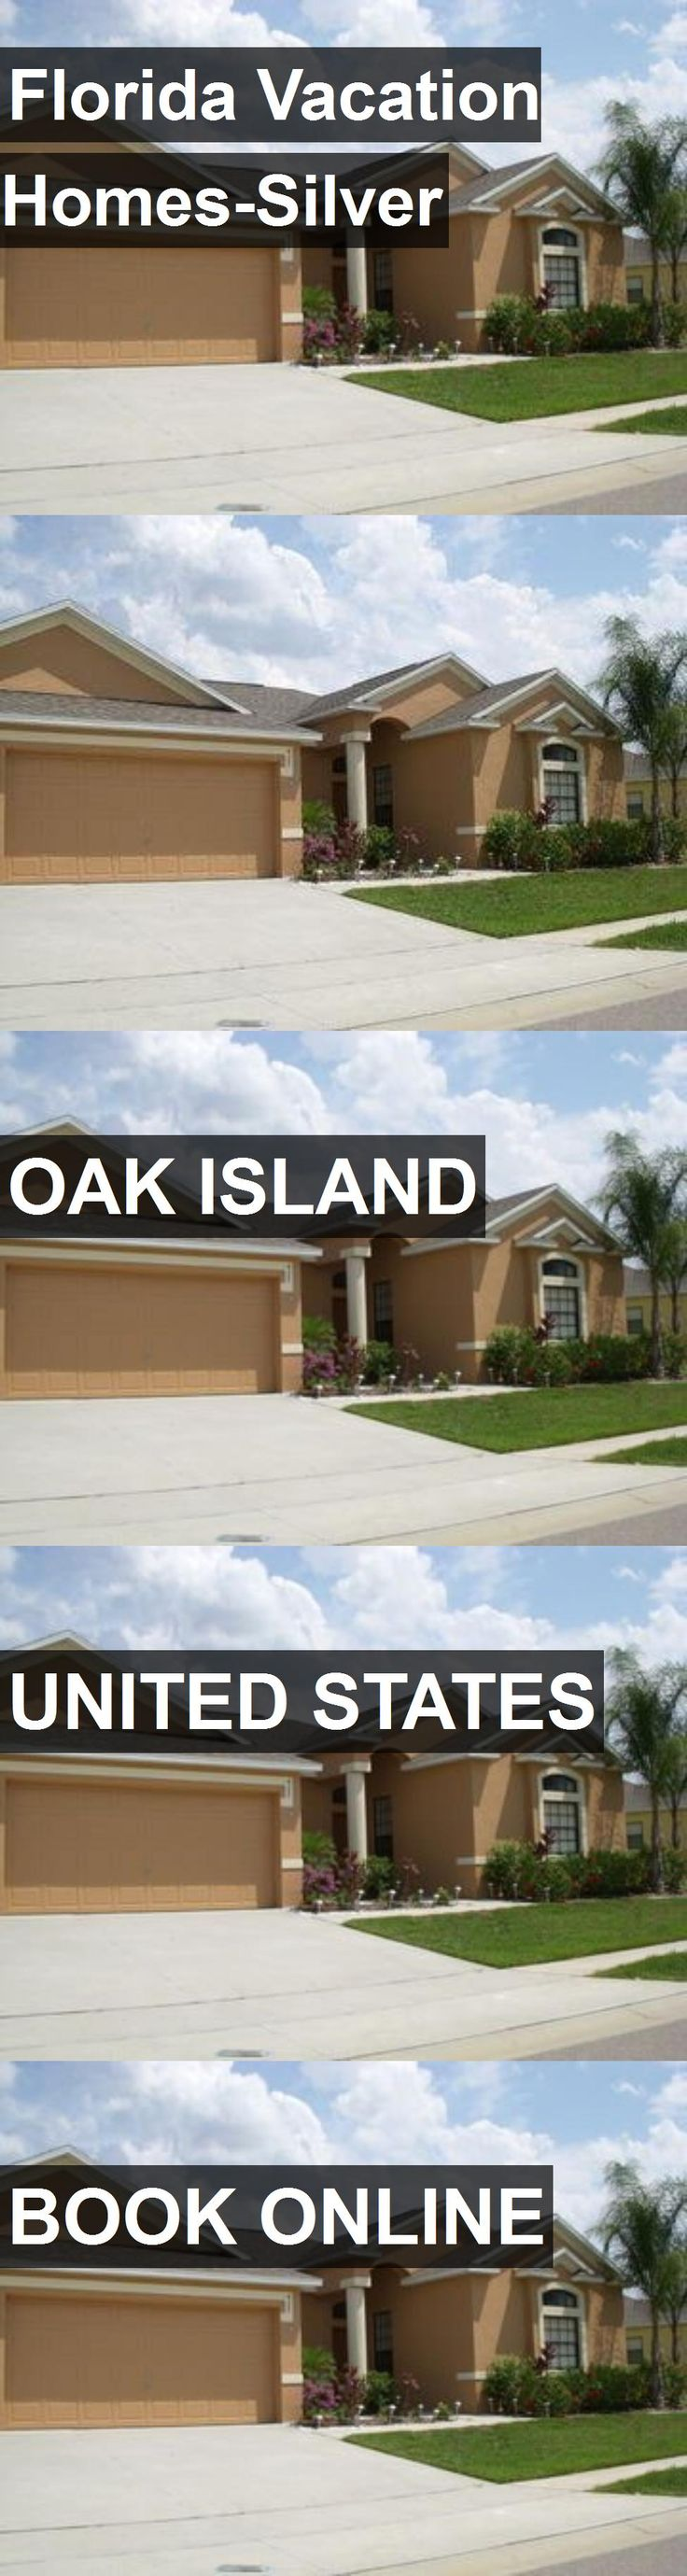 Hotel Florida Vacation Homes-Silver in Oak Island, United States. For more information, photos, reviews and best prices please follow the link. #UnitedStates #OakIsland #FloridaVacationHomes-Silver #hotel #travel #vacation